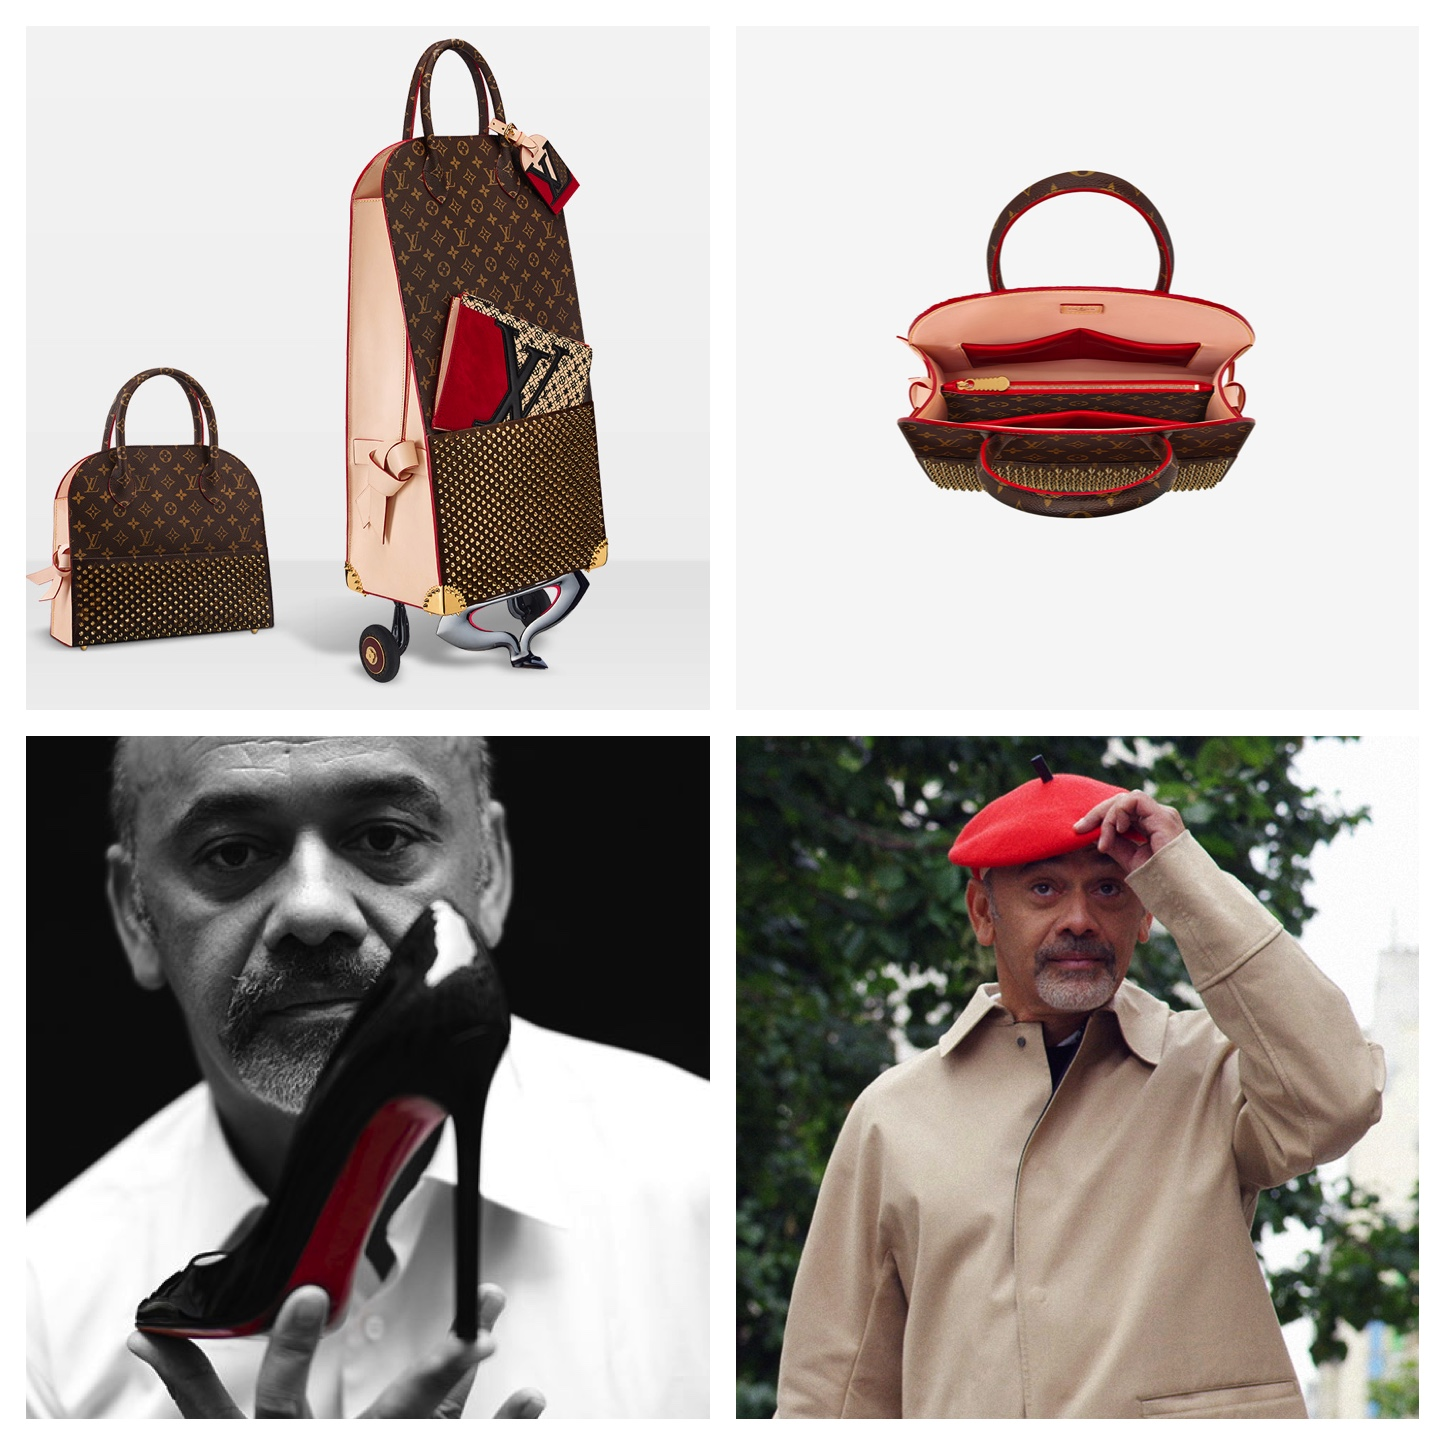 Louis Vuitton and Christian Louboutin Celebrates the LV Monogram